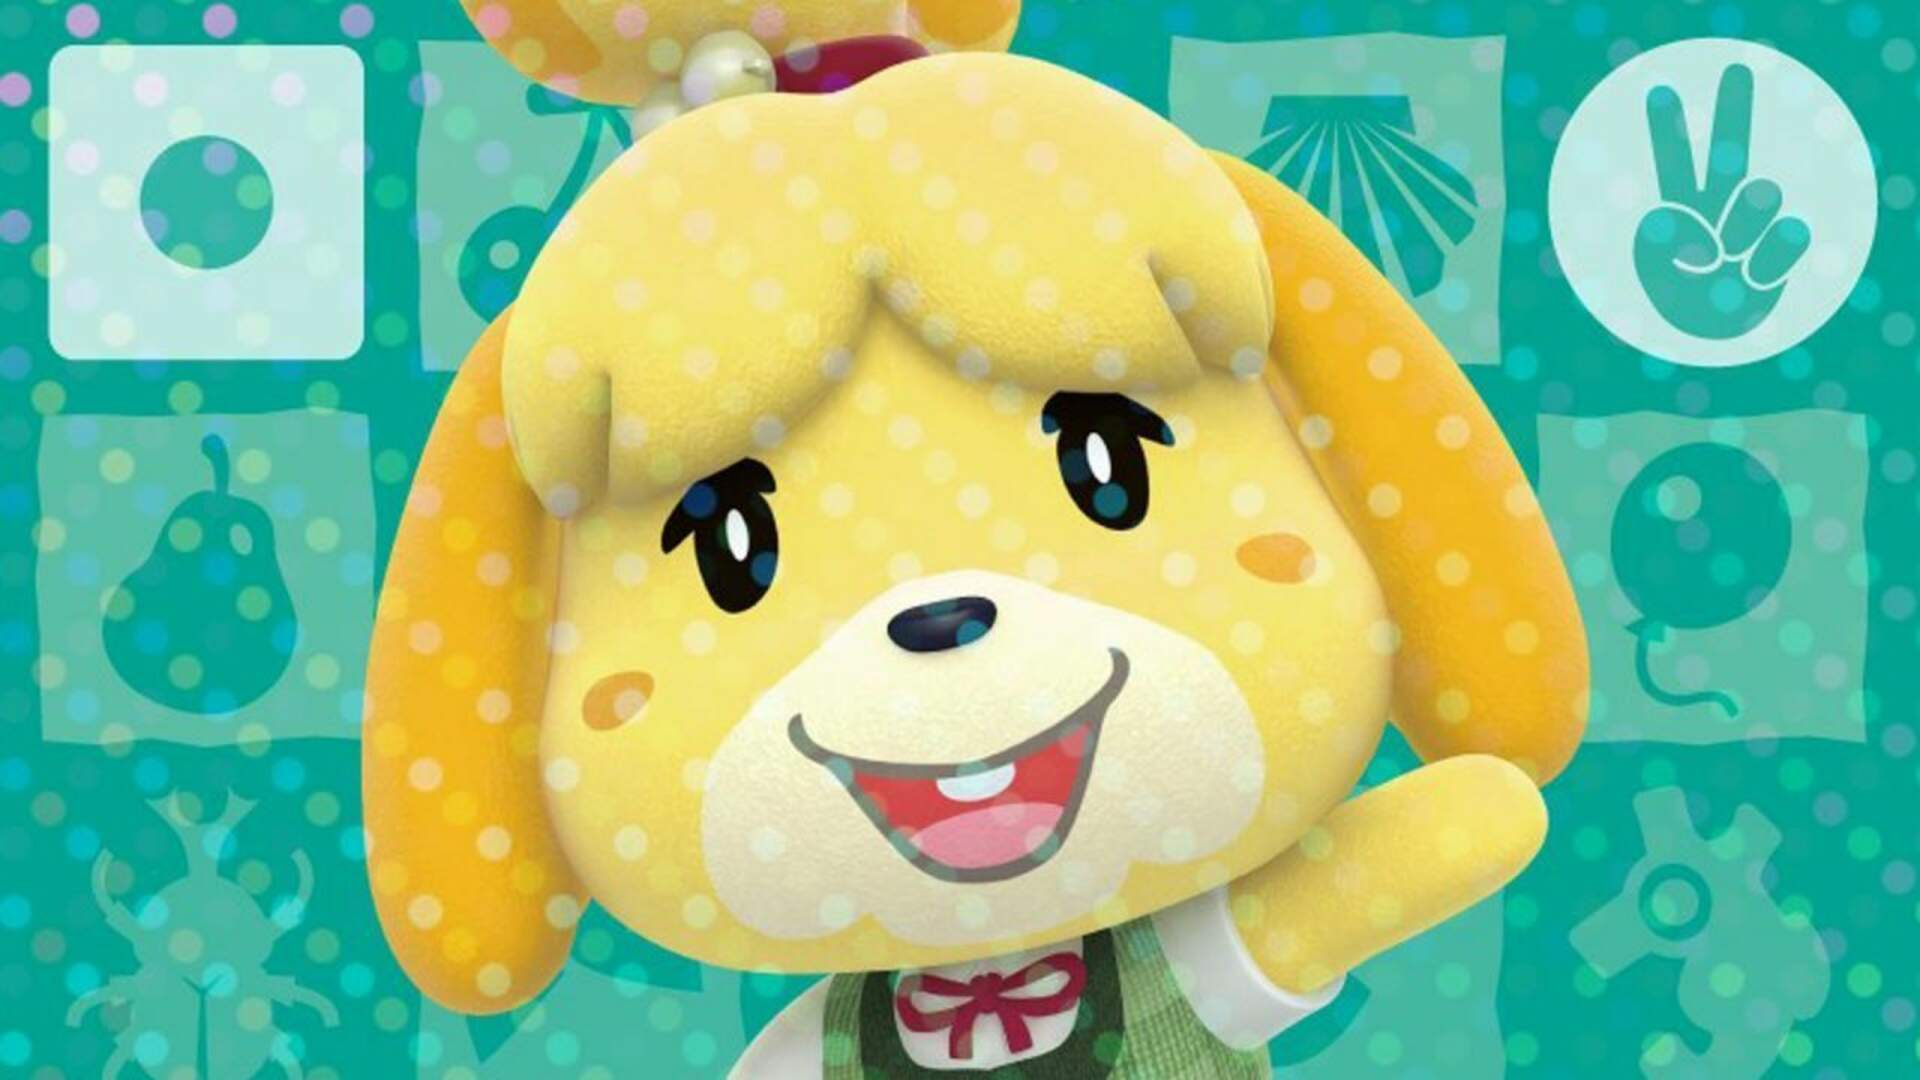 Nintendo Pulls Mobile Animal Crossing, Fire Emblem From Belgium Over Loot Box Laws